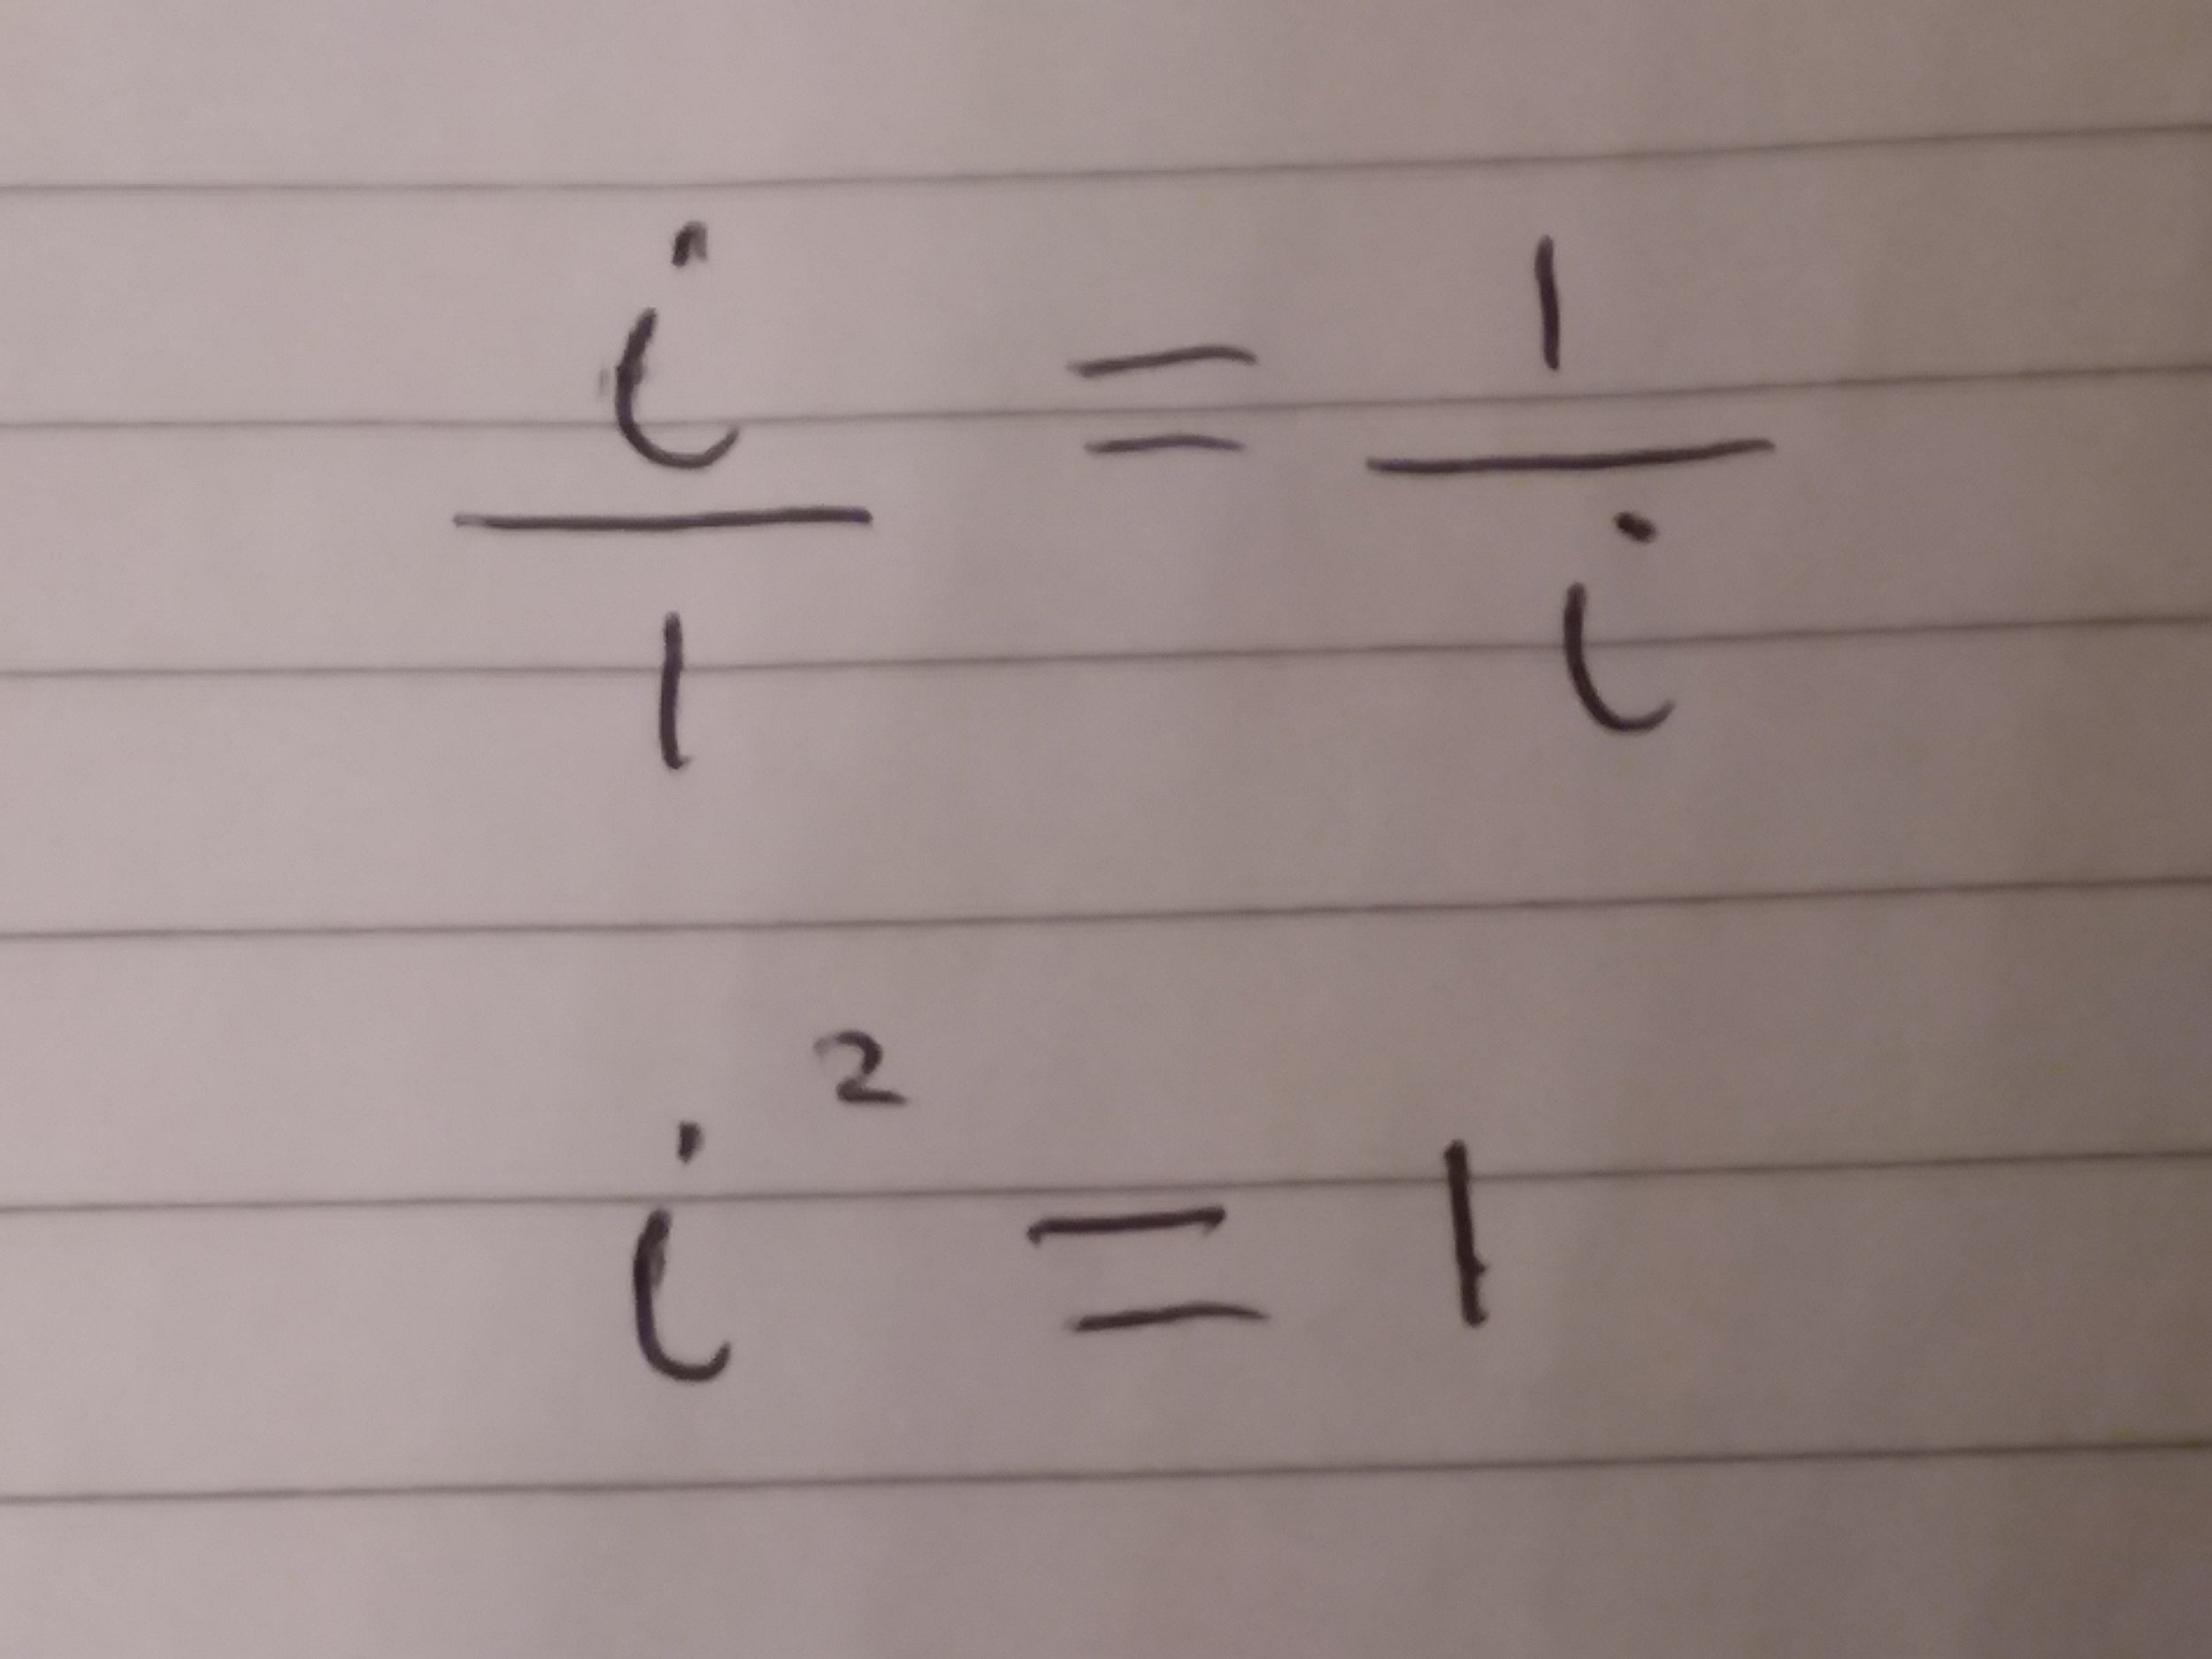 Crossmultiplying, I've multiplied up by i and by 1 to get a result.